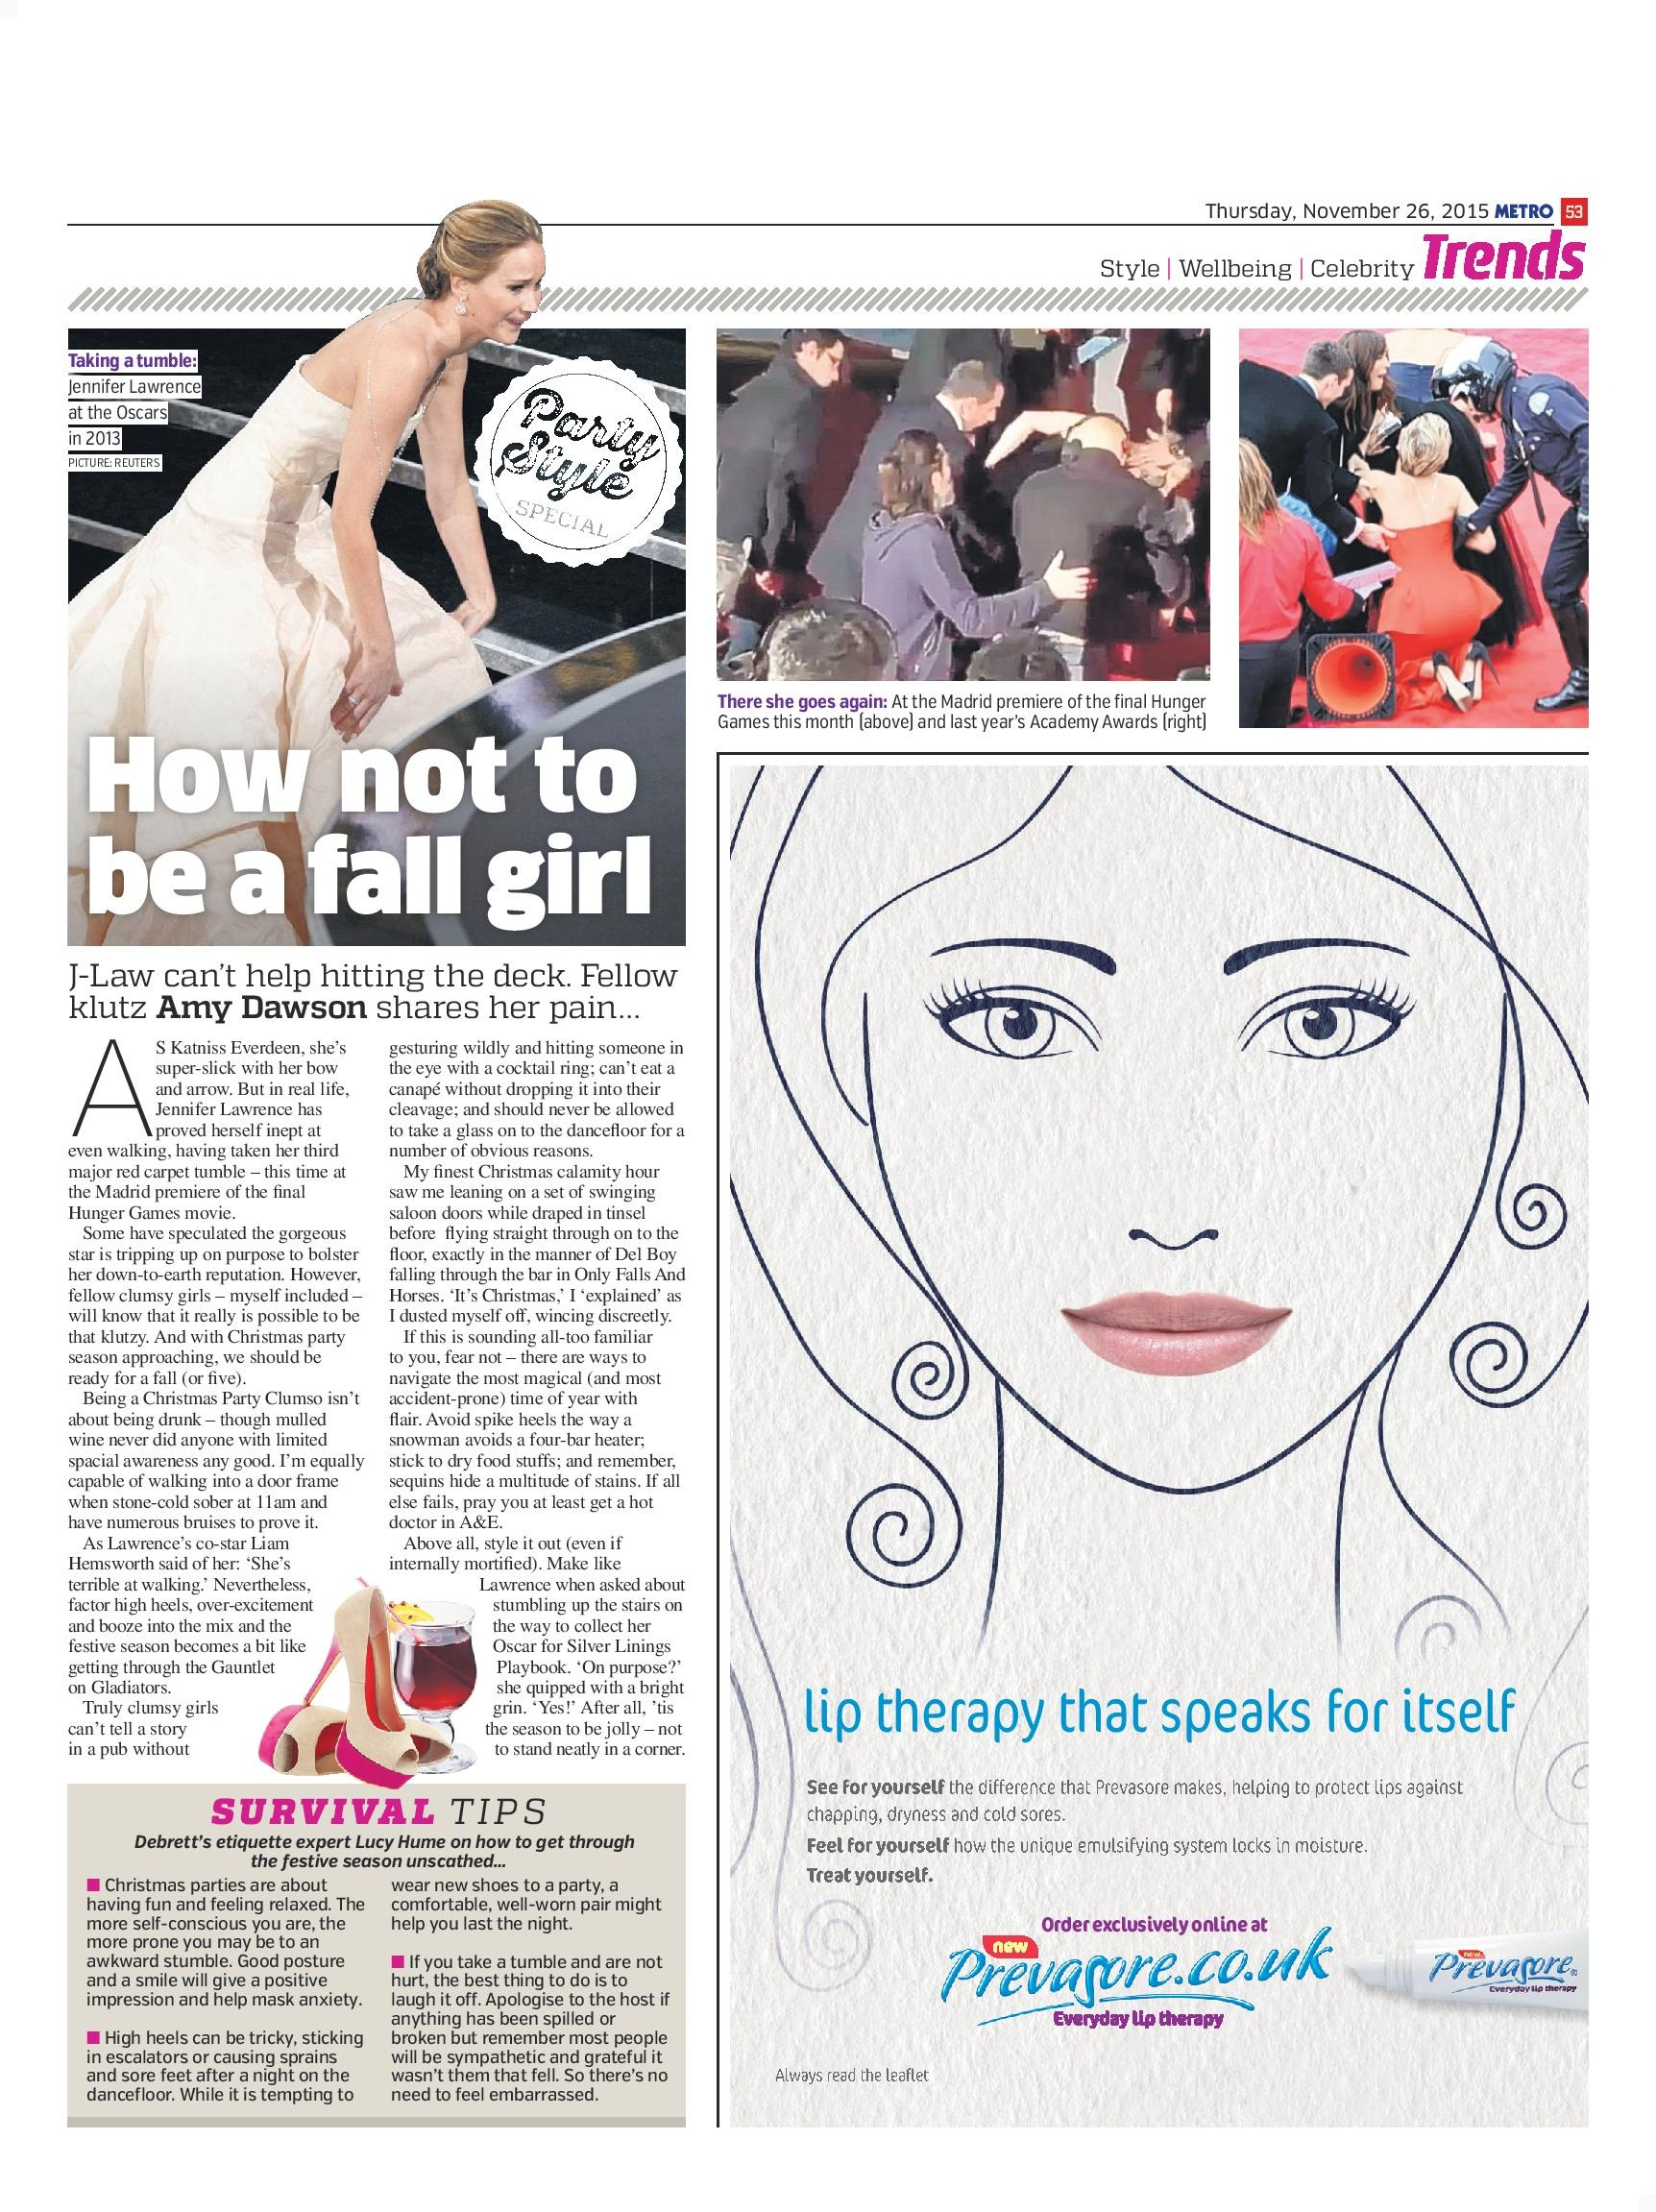 How Not To Be A Fall Girl (Metro, 26th Nov 2015)